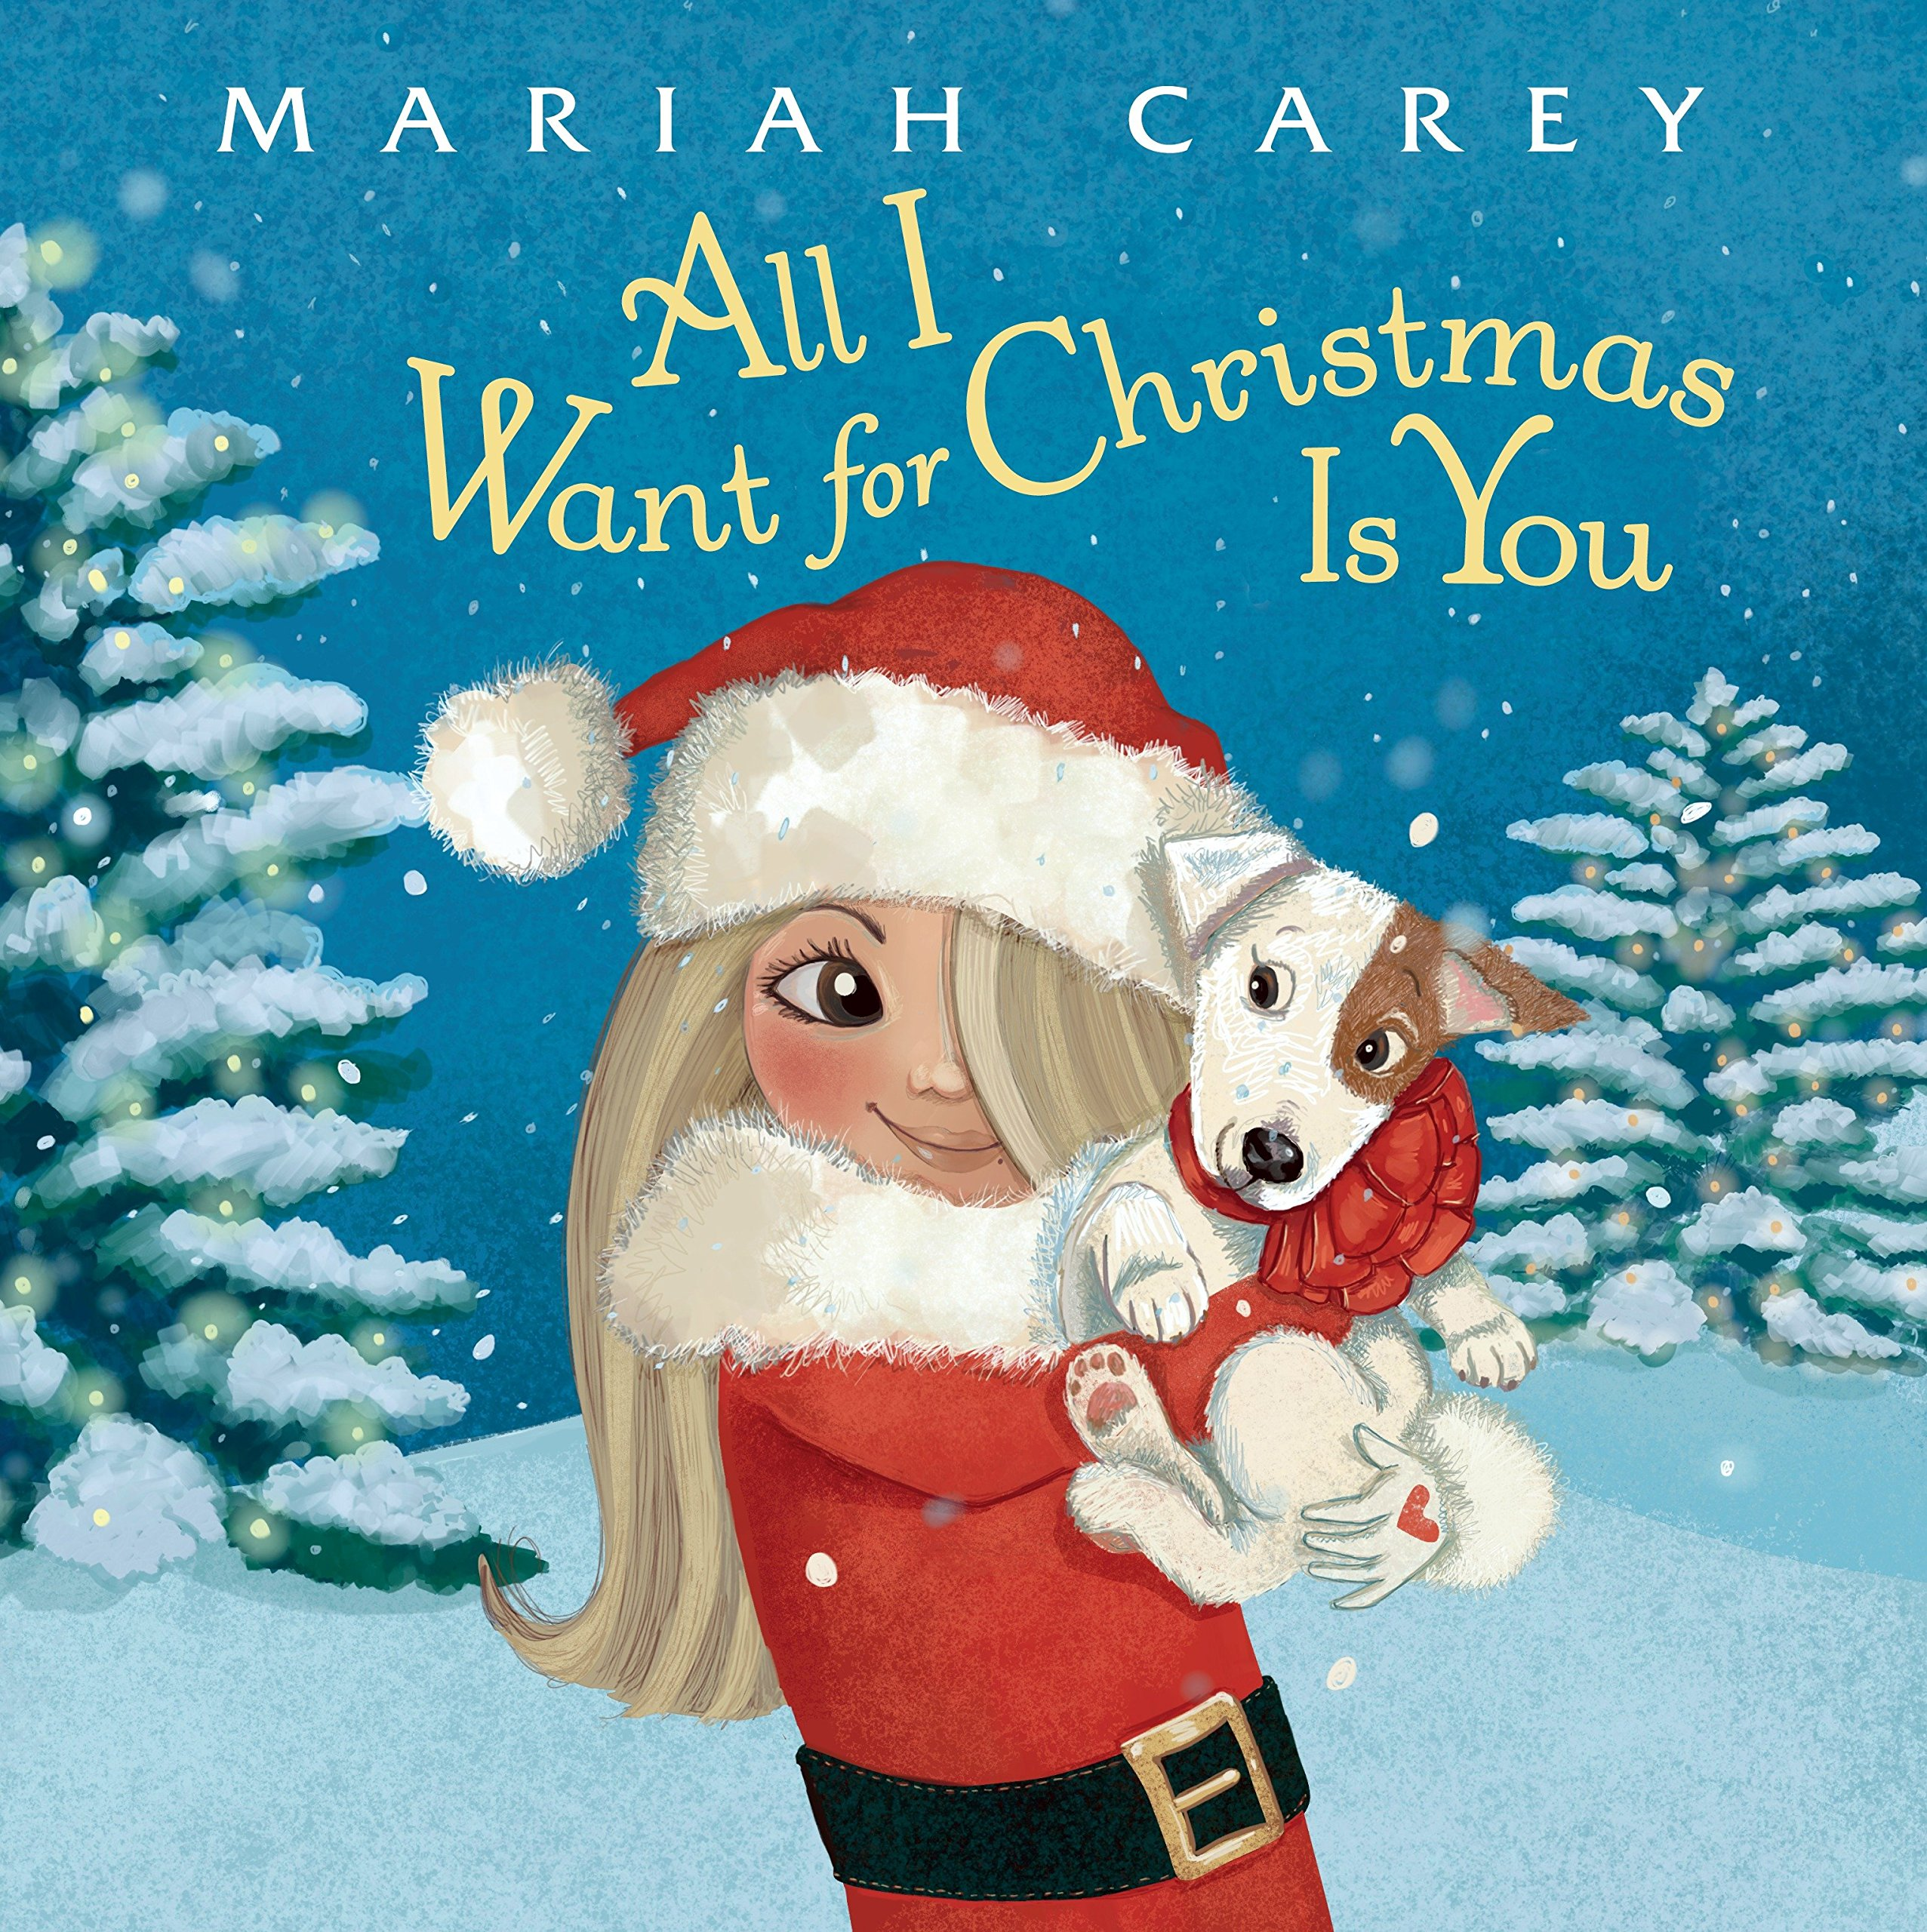 all i want for christmas is you mariah carey colleen madden 9780399551390 amazoncom books - All I Want For Christmas Is You Mariah Carey Lyrics